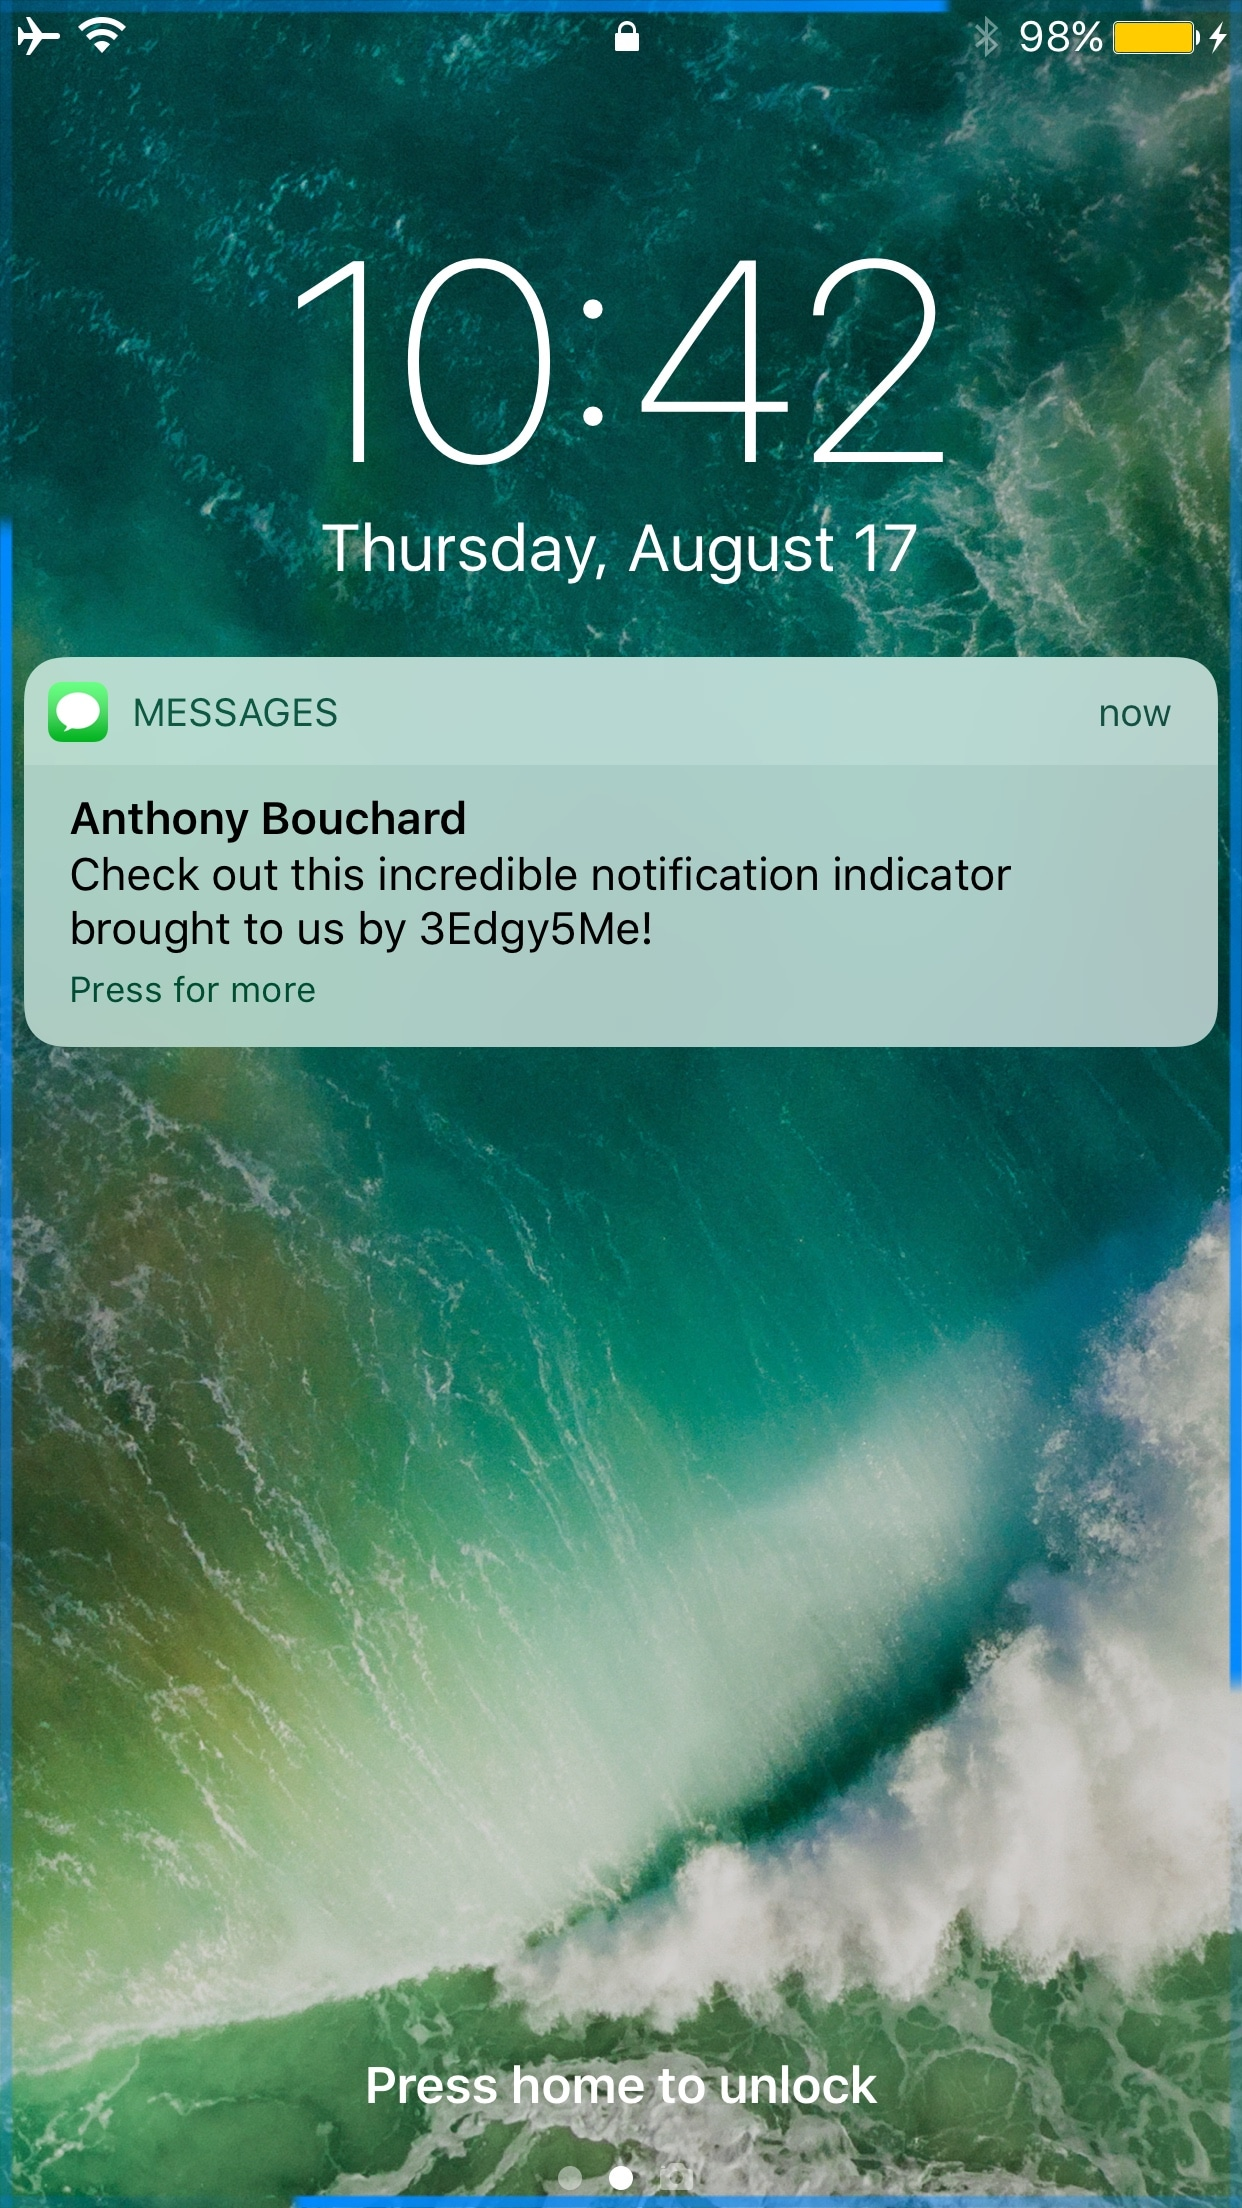 3Edgy5Me brings Galaxy S8-inspired notification animations to the iPhone